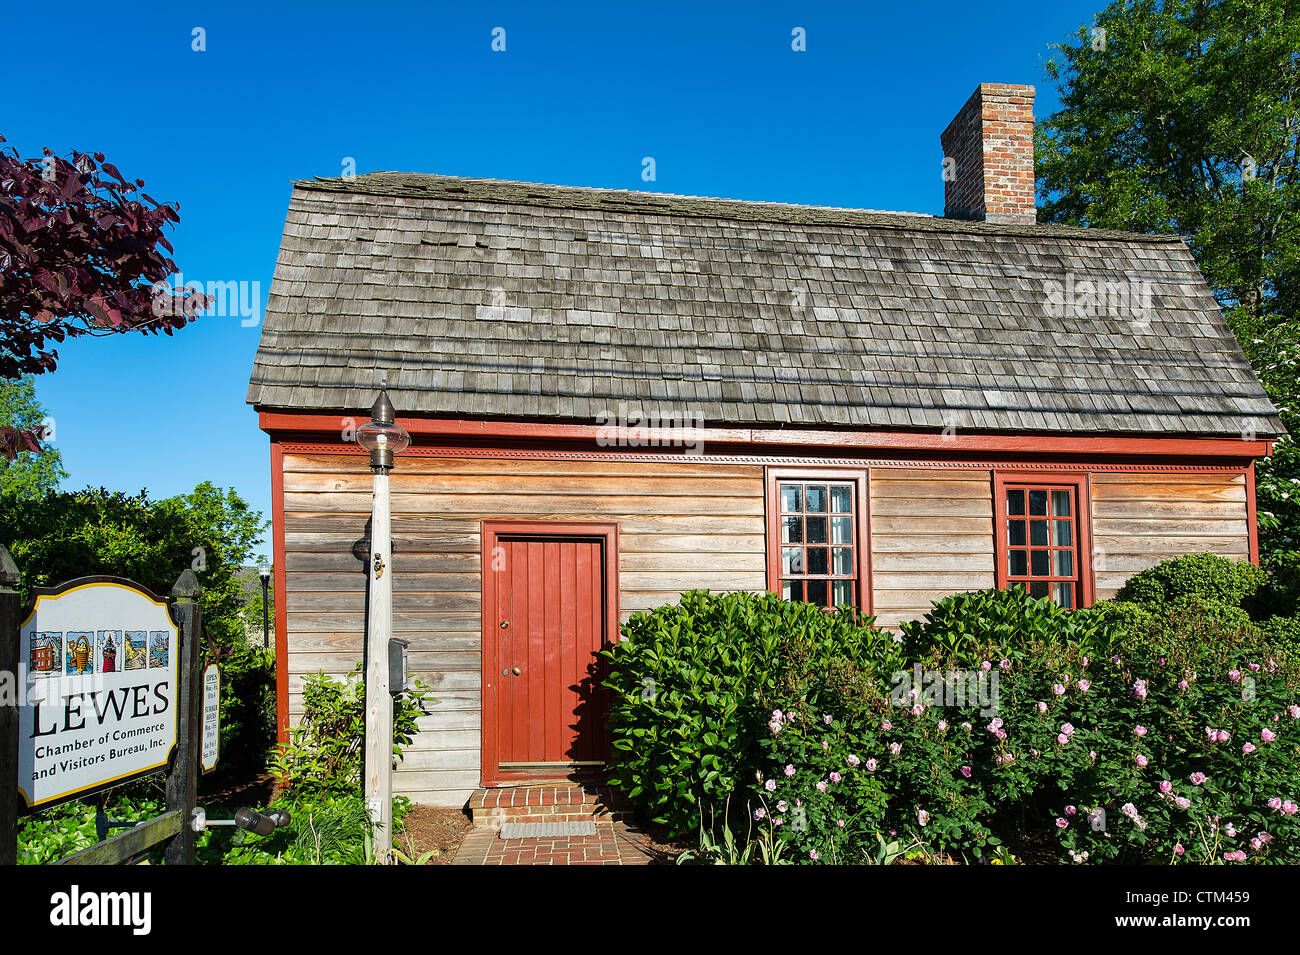 The Fisher Martin House, now the site of the Chamber of Commerce and Visitors Bureau's, Lewes, Delaware - Stock Image